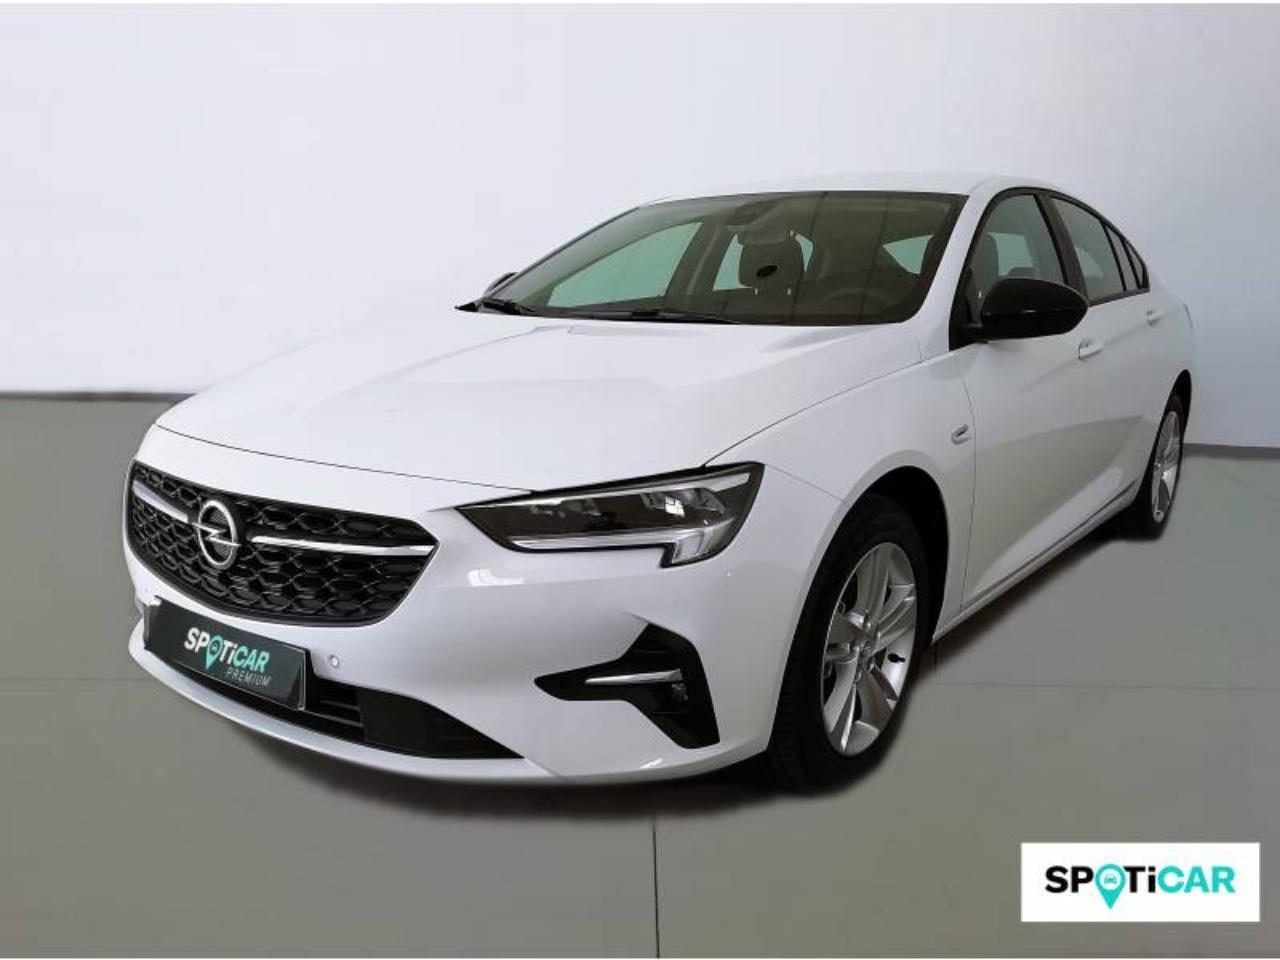 Opel INSIGNIA GS  1.5D DVH 90kW MT6 Business Edition